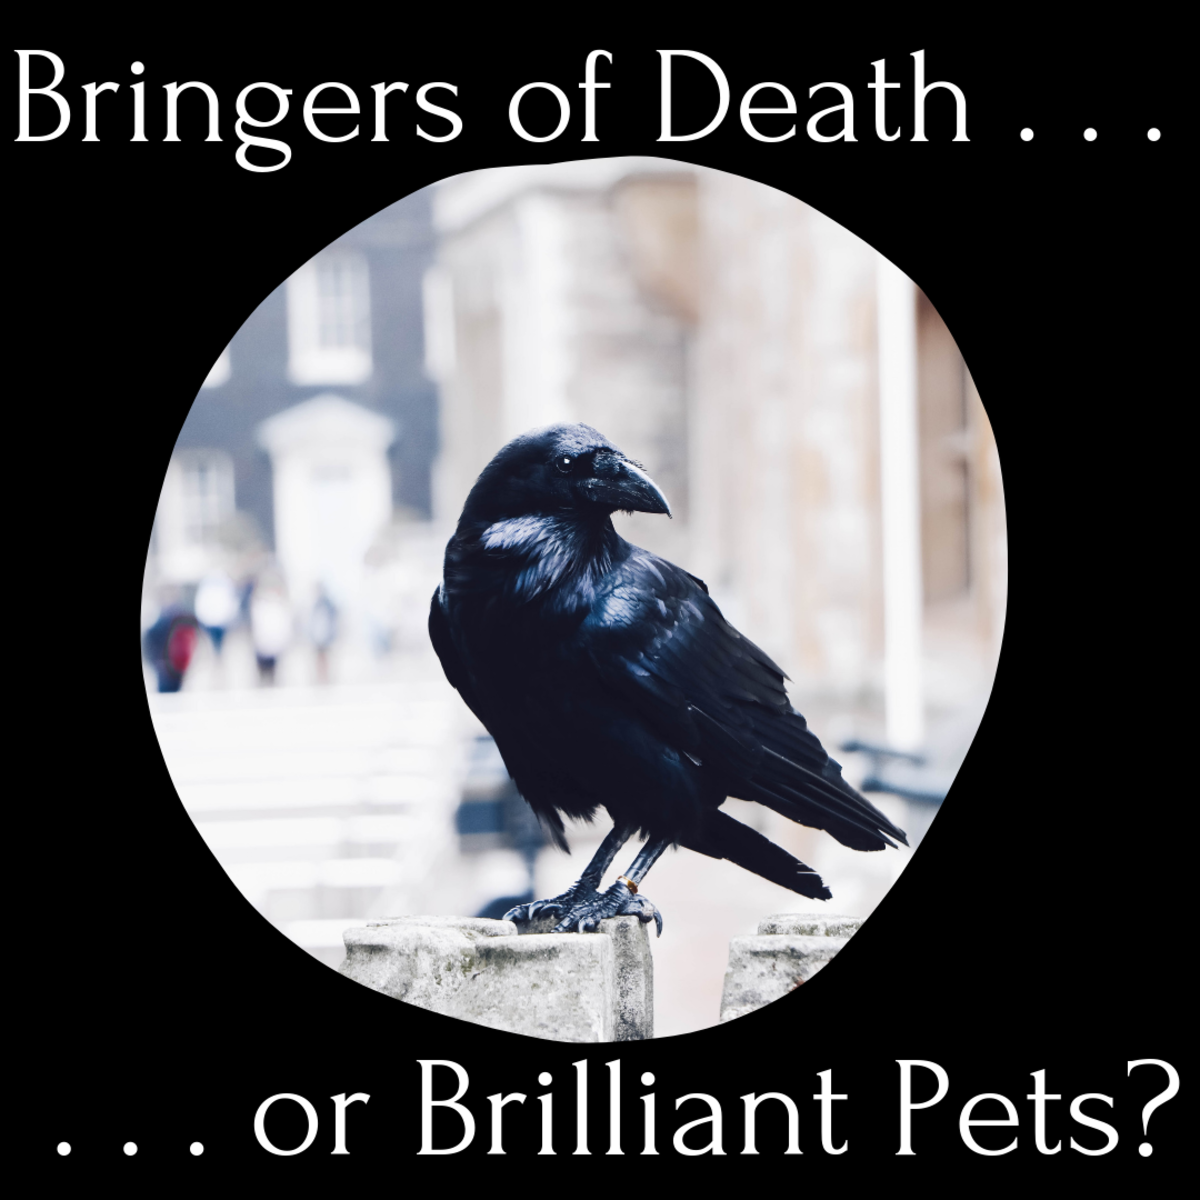 The Black Crow Superstition (What I Learned When Caring for